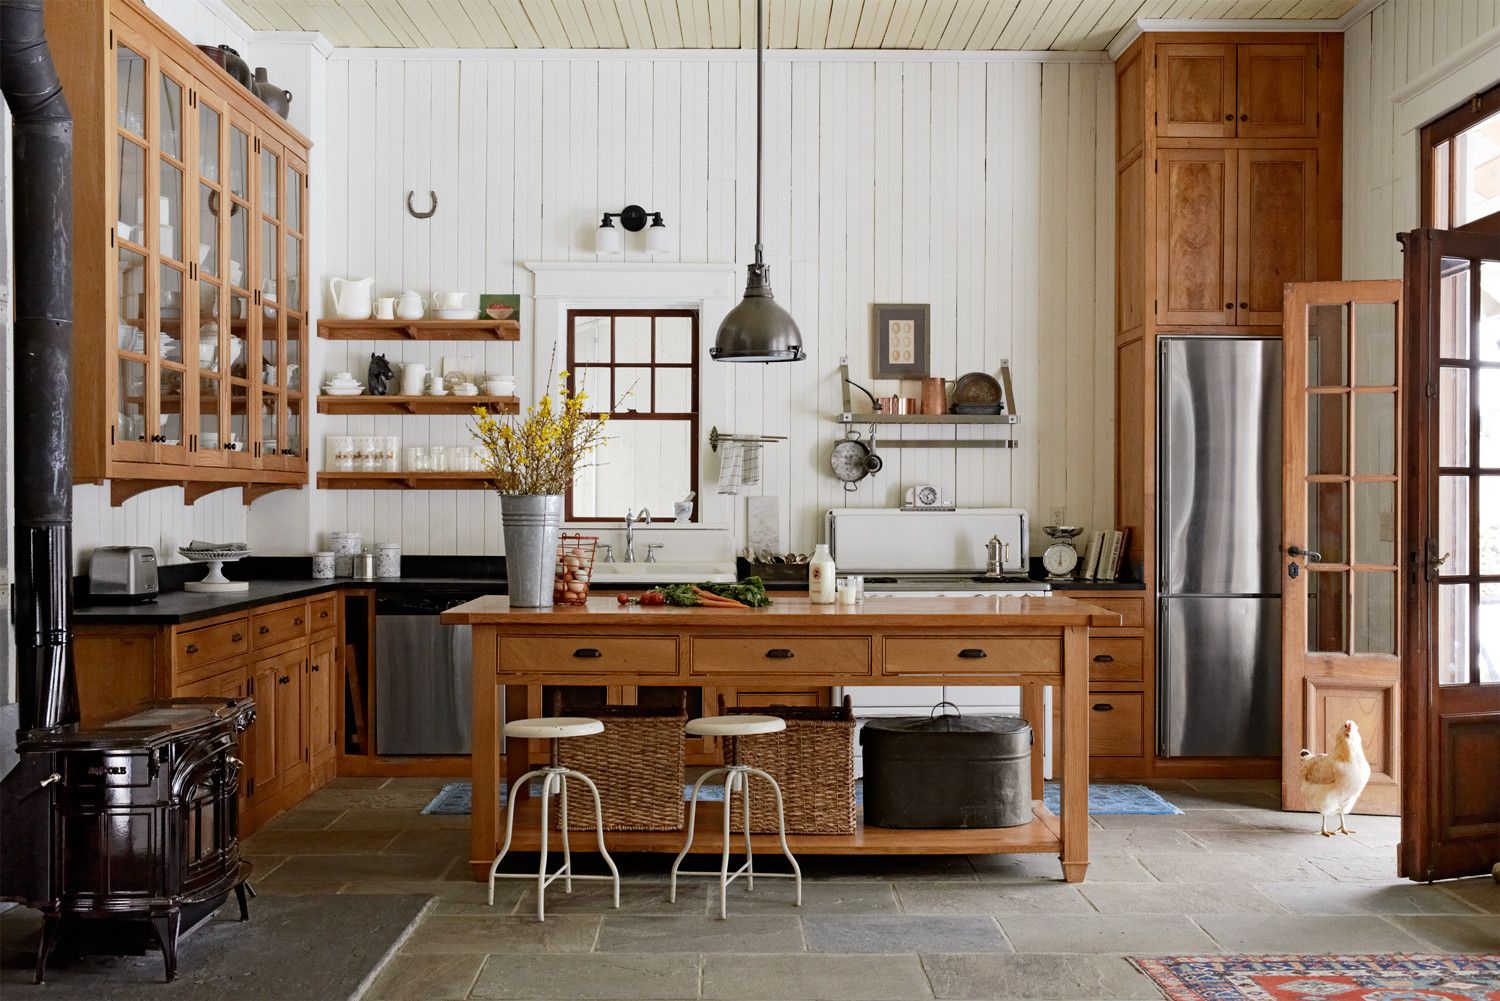 Best ideas about Country Kitchen Decorating Idea . Save or Pin 101 Kitchen Design Ideas of Country Kitchens Now.